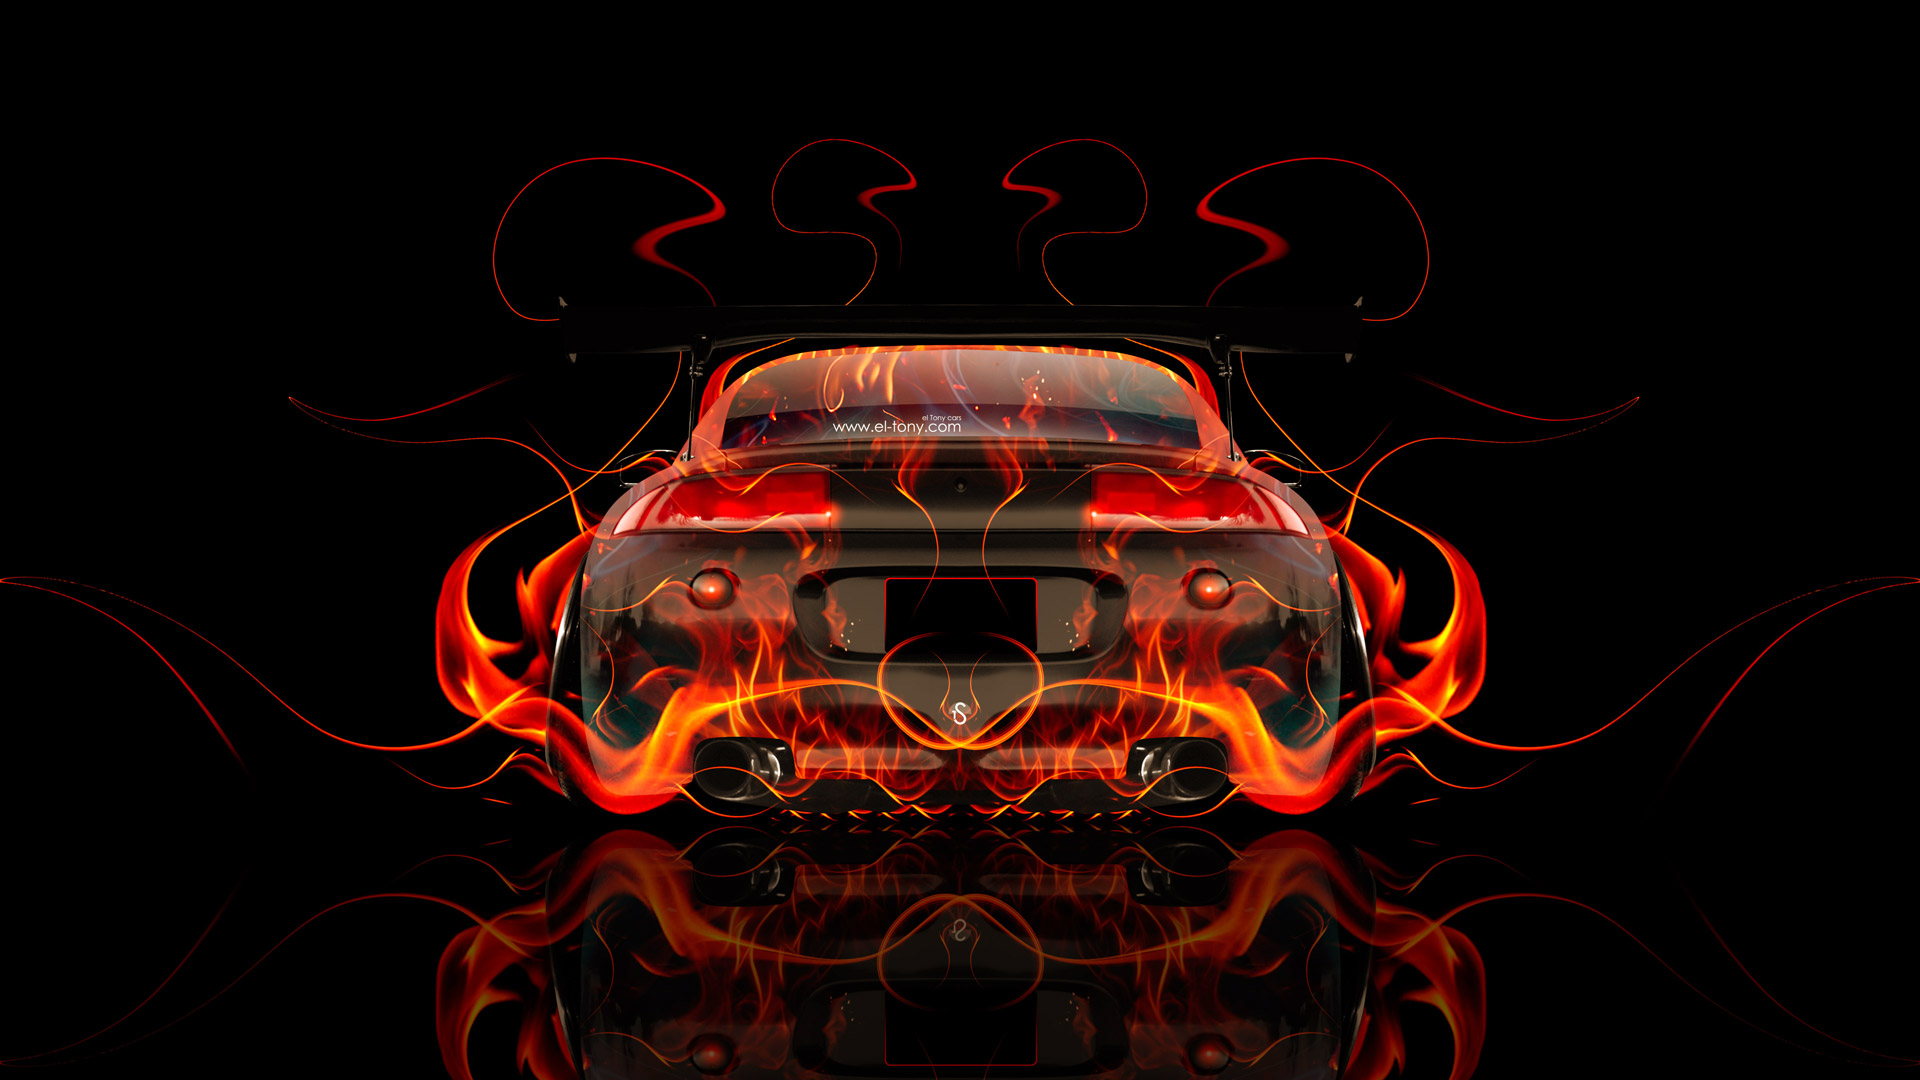 Beautiful Mitsubishi Eclipse JDM Tuning Back Fire Car 2014. TAGS Abstract ...